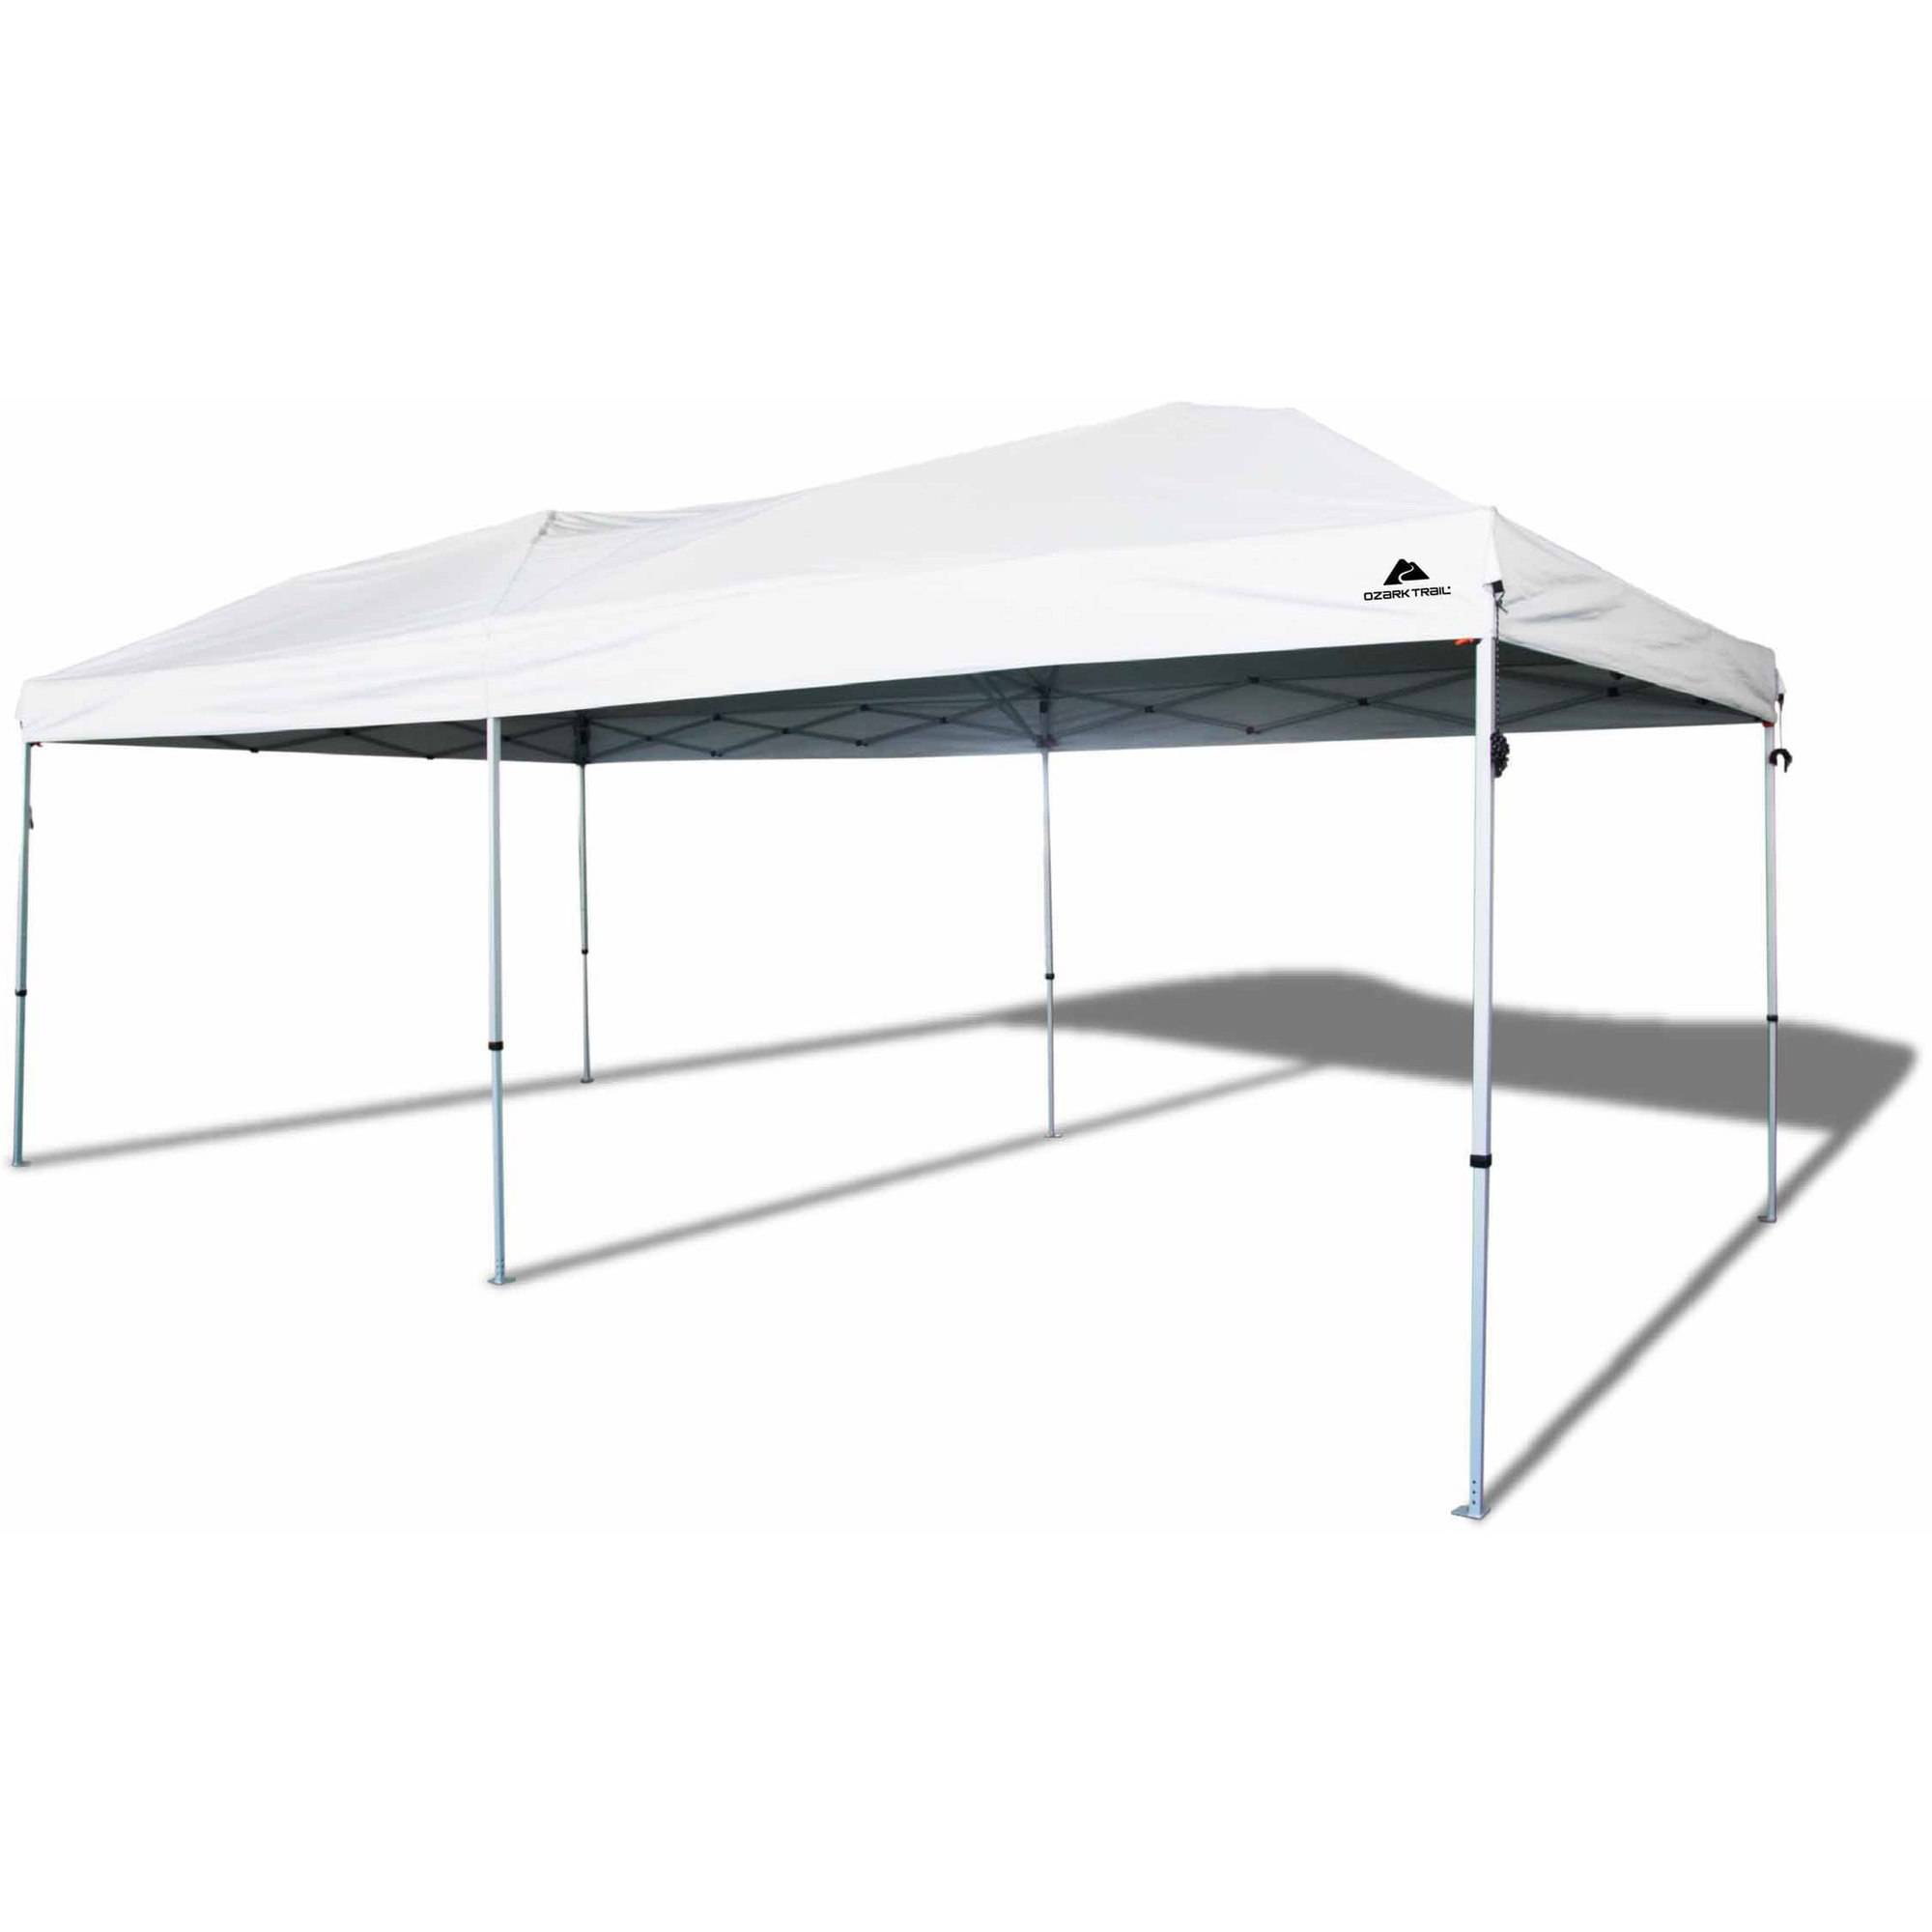 Ozark Trail 20x10 Straight Leg Instant Canopy 200 Sq Ft